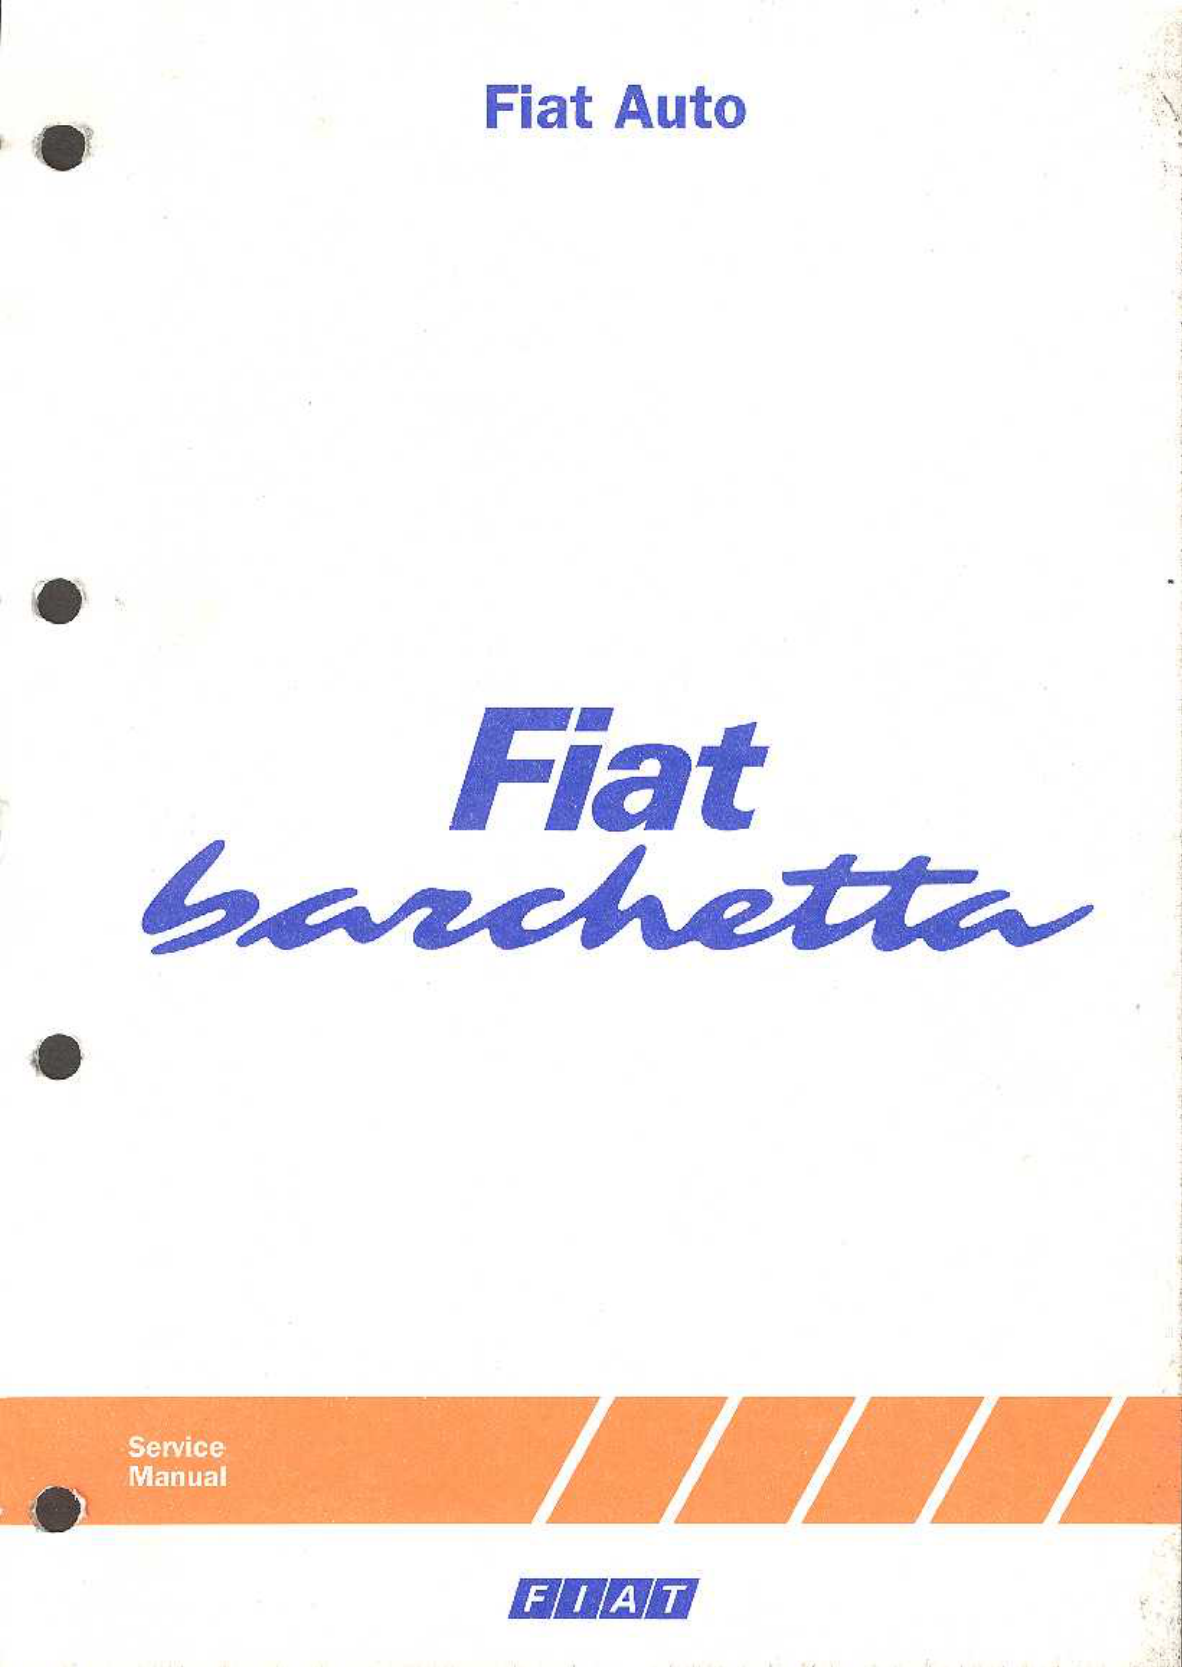 See our other Fiat Barchetta Manuals: Fiat Barchetta 2003 Owners Manual